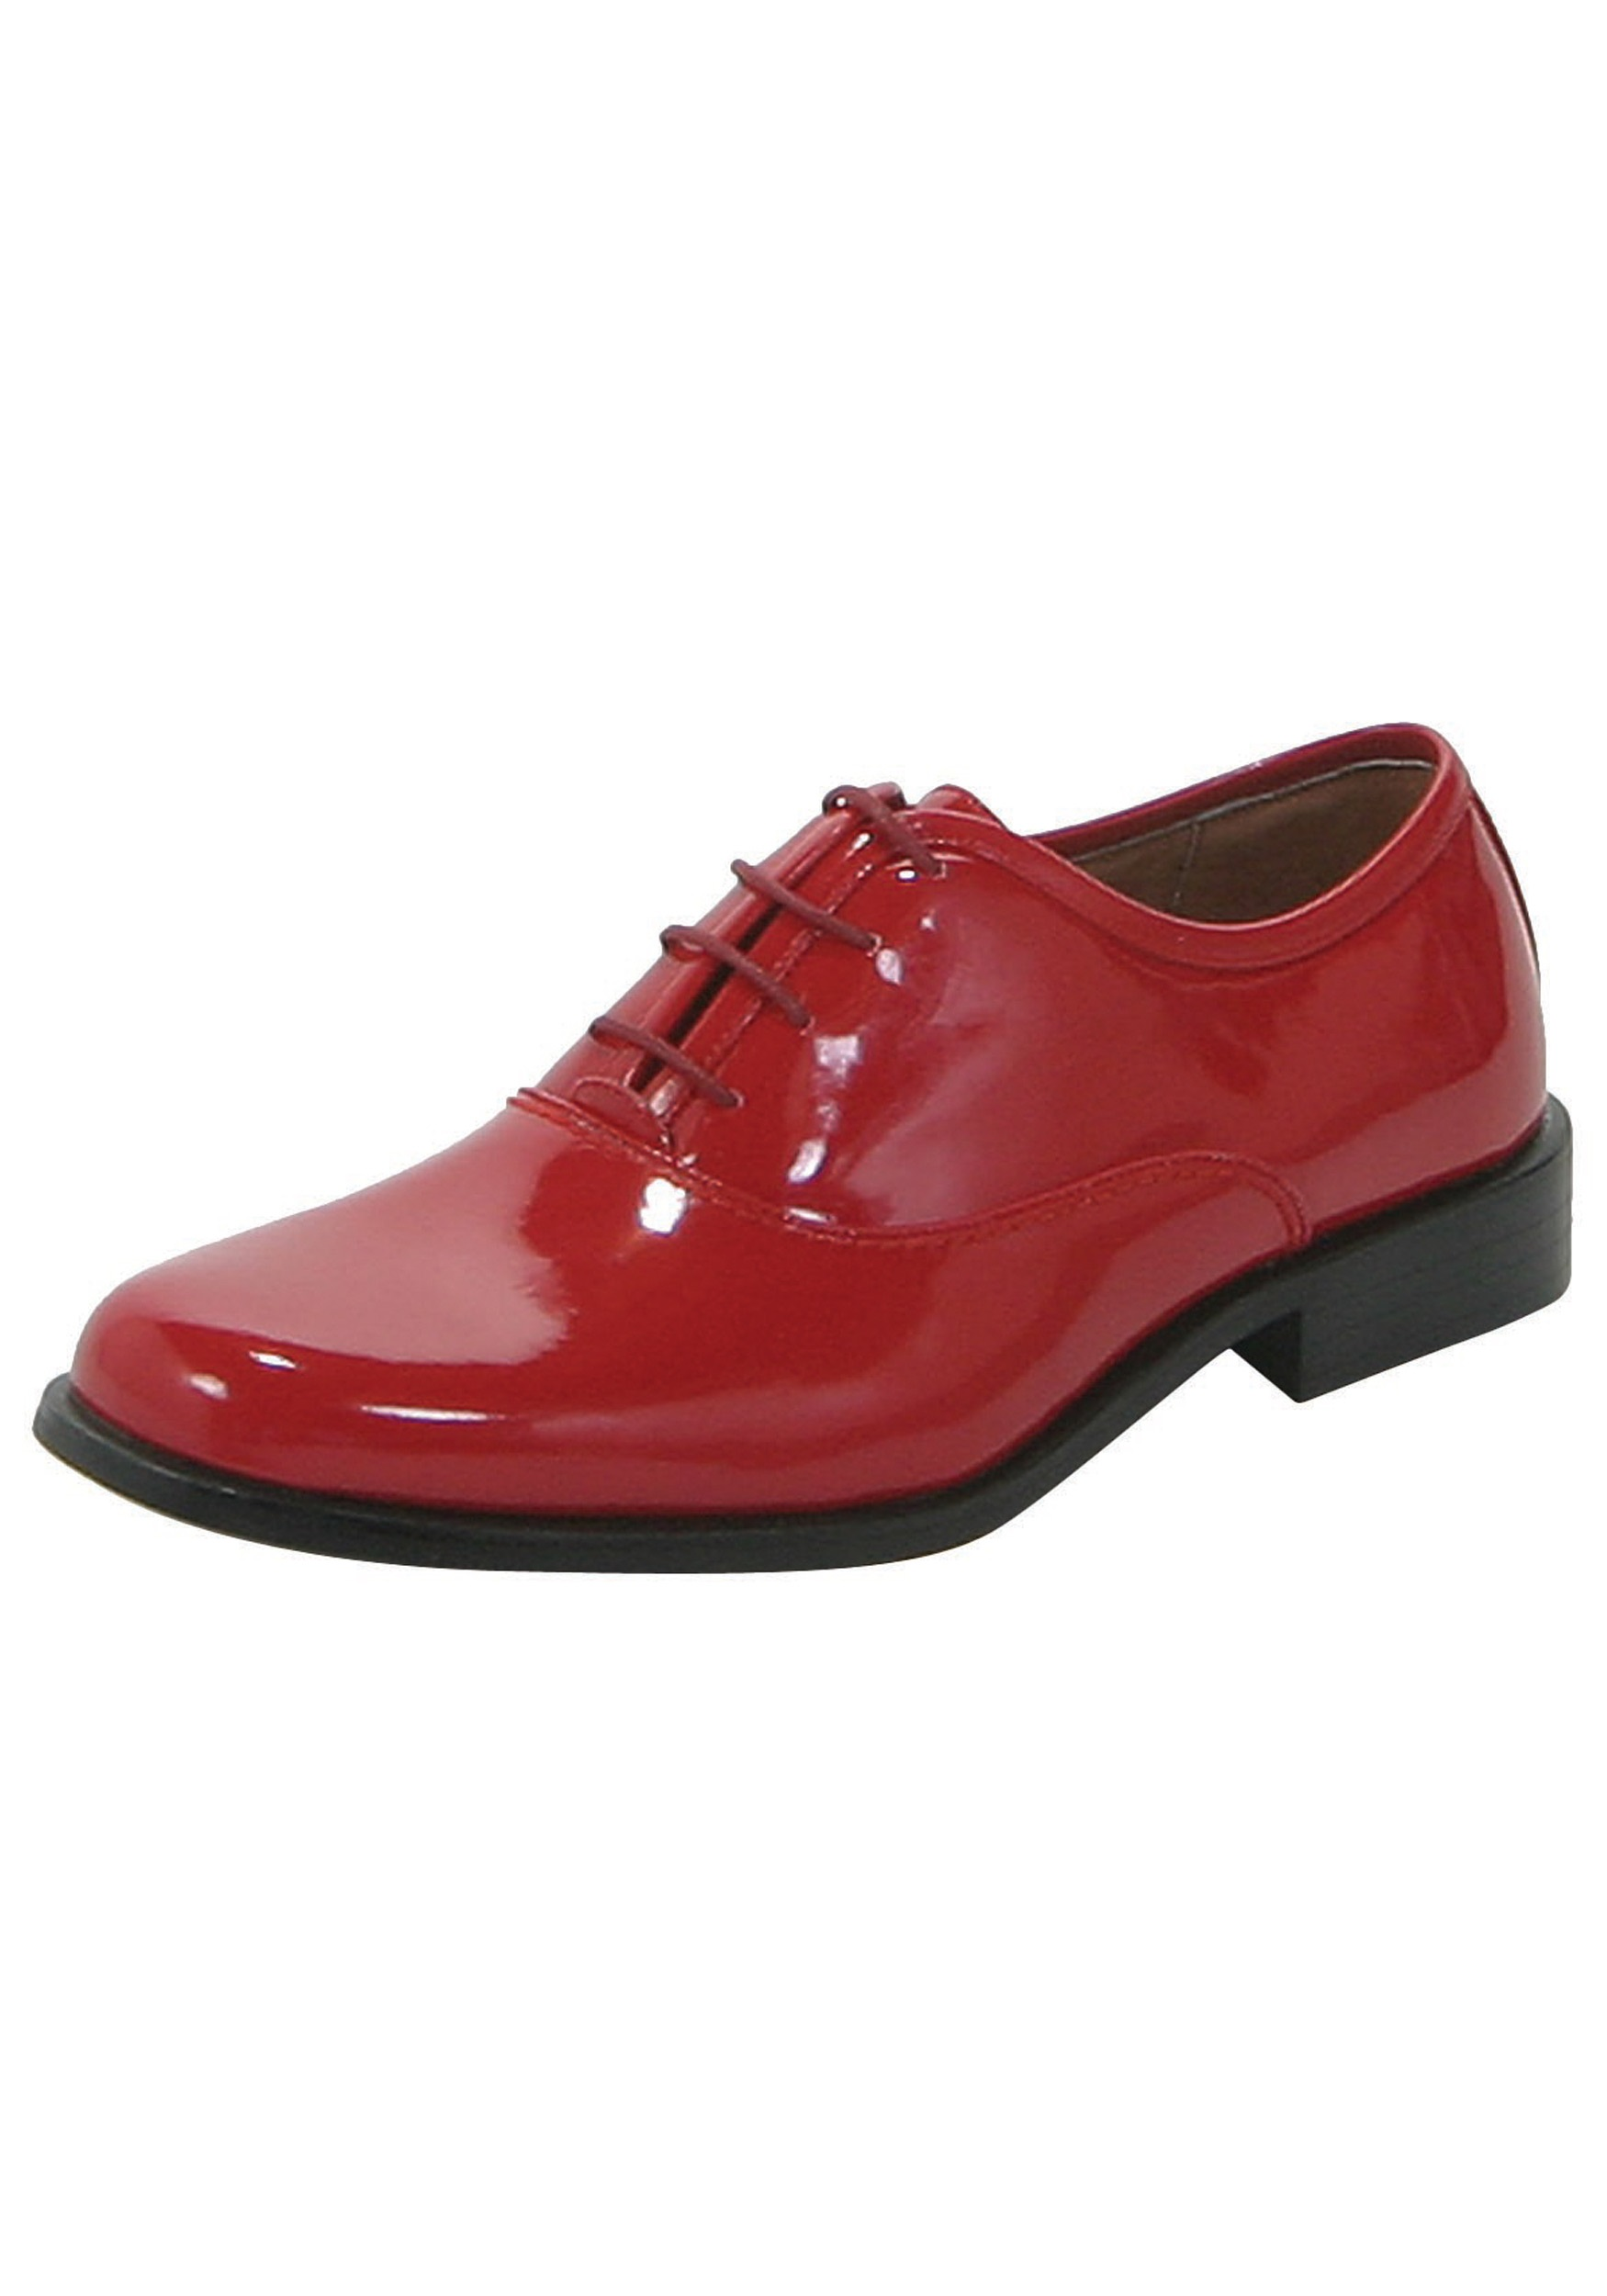 Zoot Suit Gangster S Red Shoes Gangster Shoes And